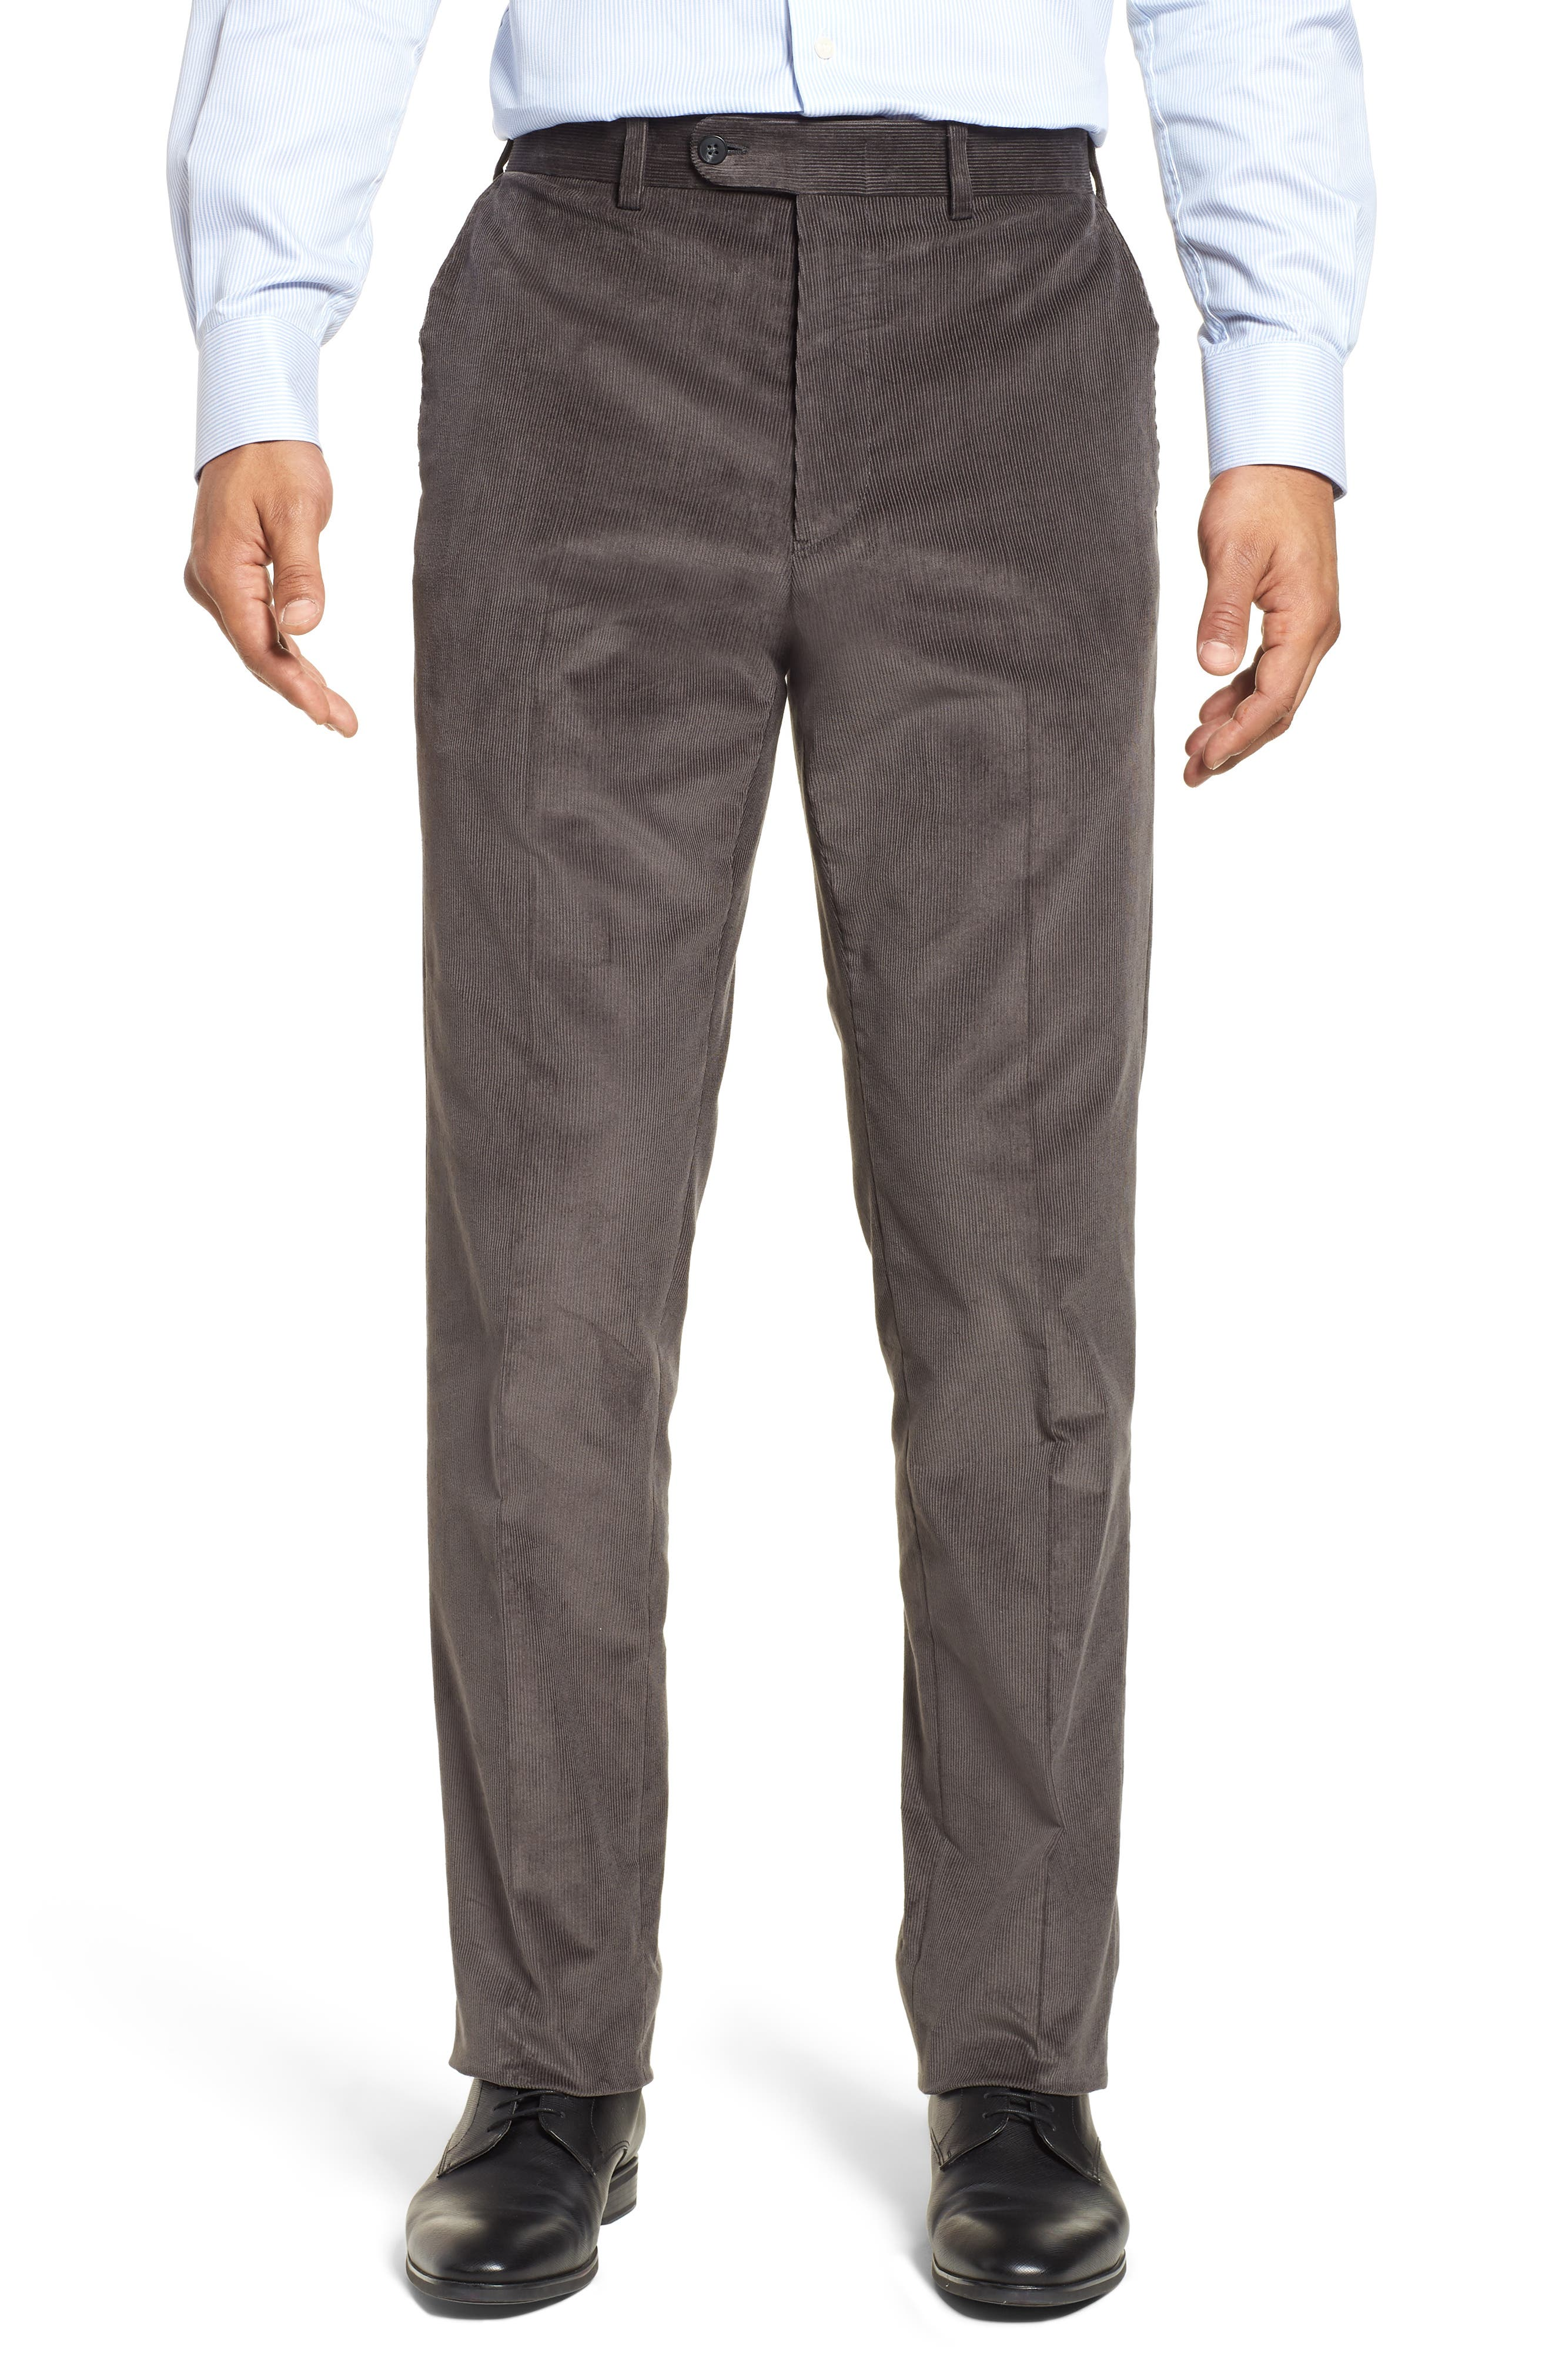 Torino Traditional Fit Flat Front Corduroy Trousers,                             Main thumbnail 1, color,                             GREY